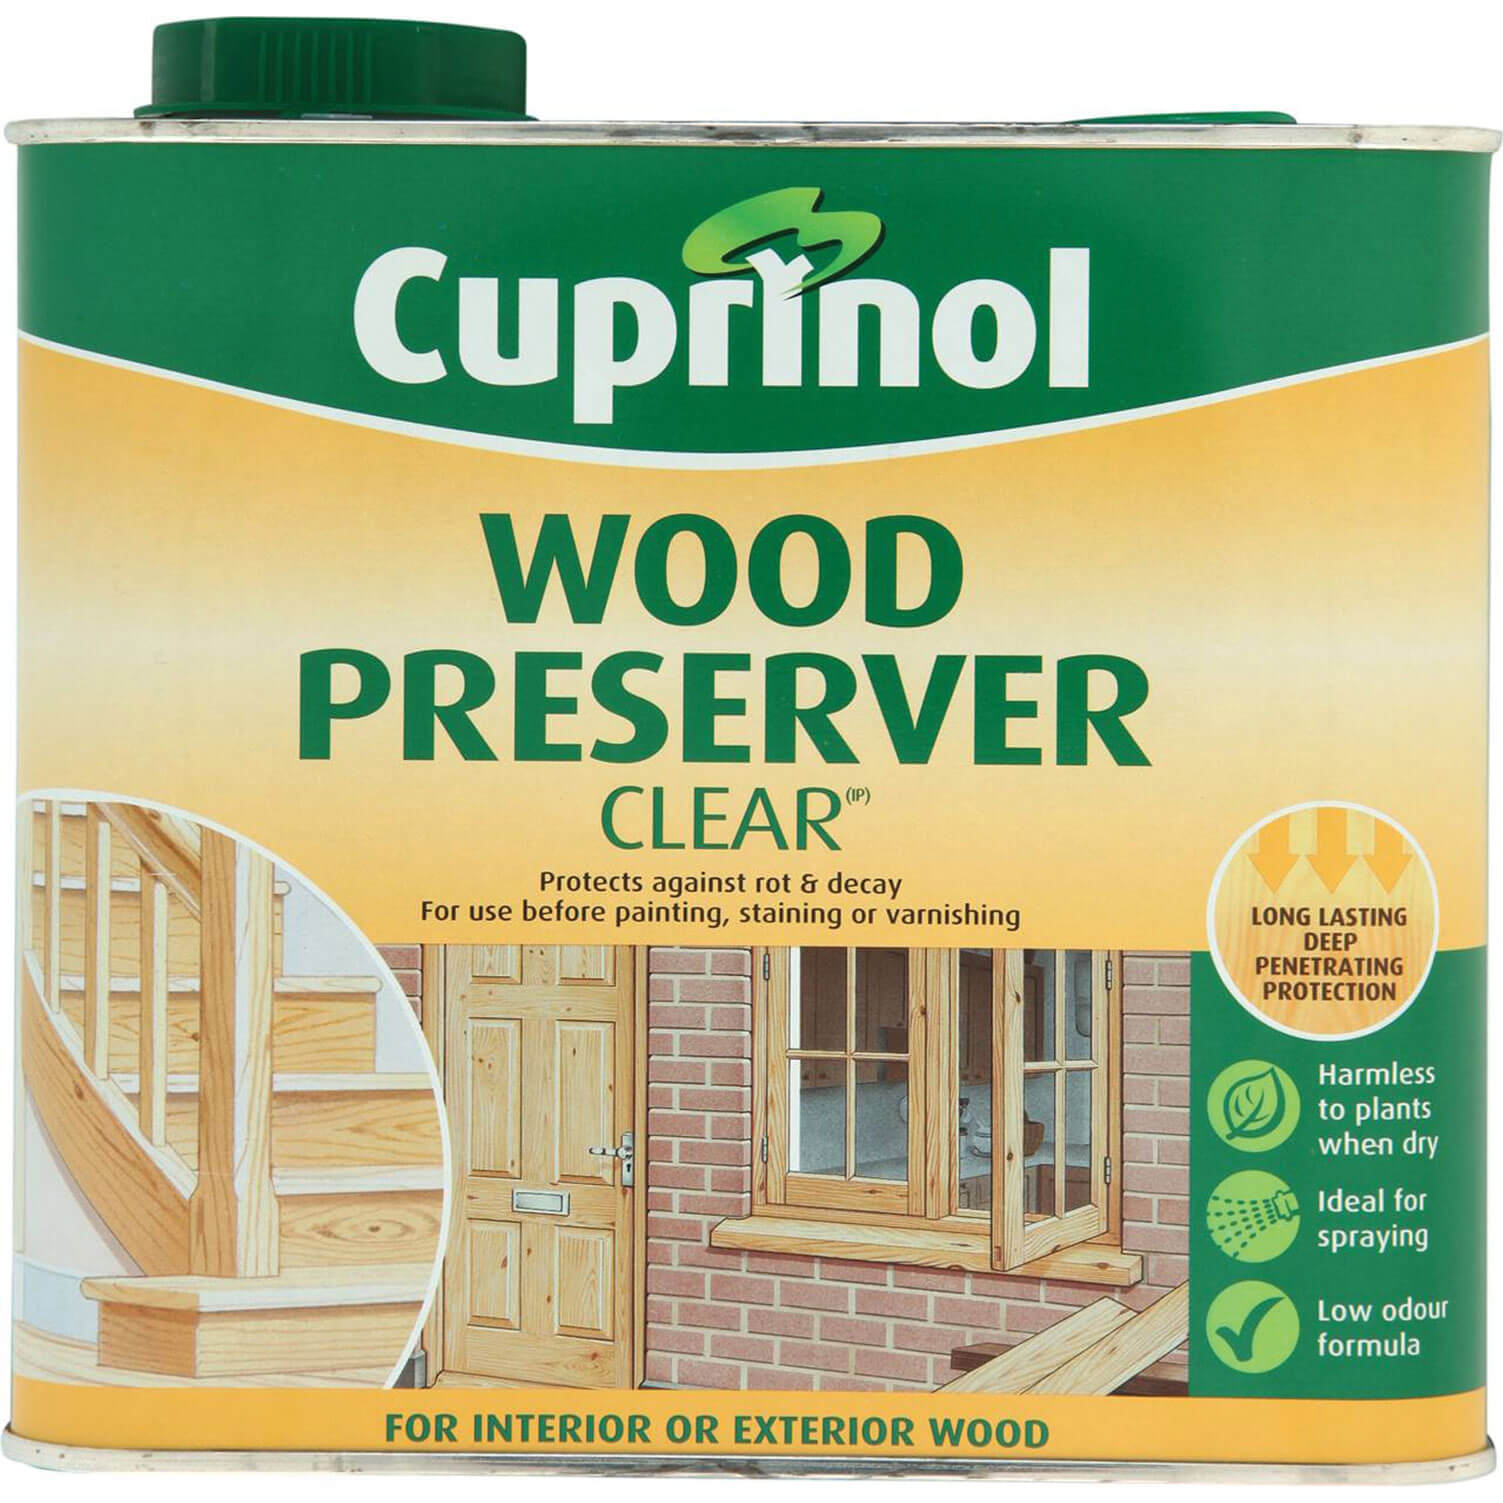 Wood care cuprinol wood preserver clear 2 5 litre special offers Cuprinol exterior wood preserver clear